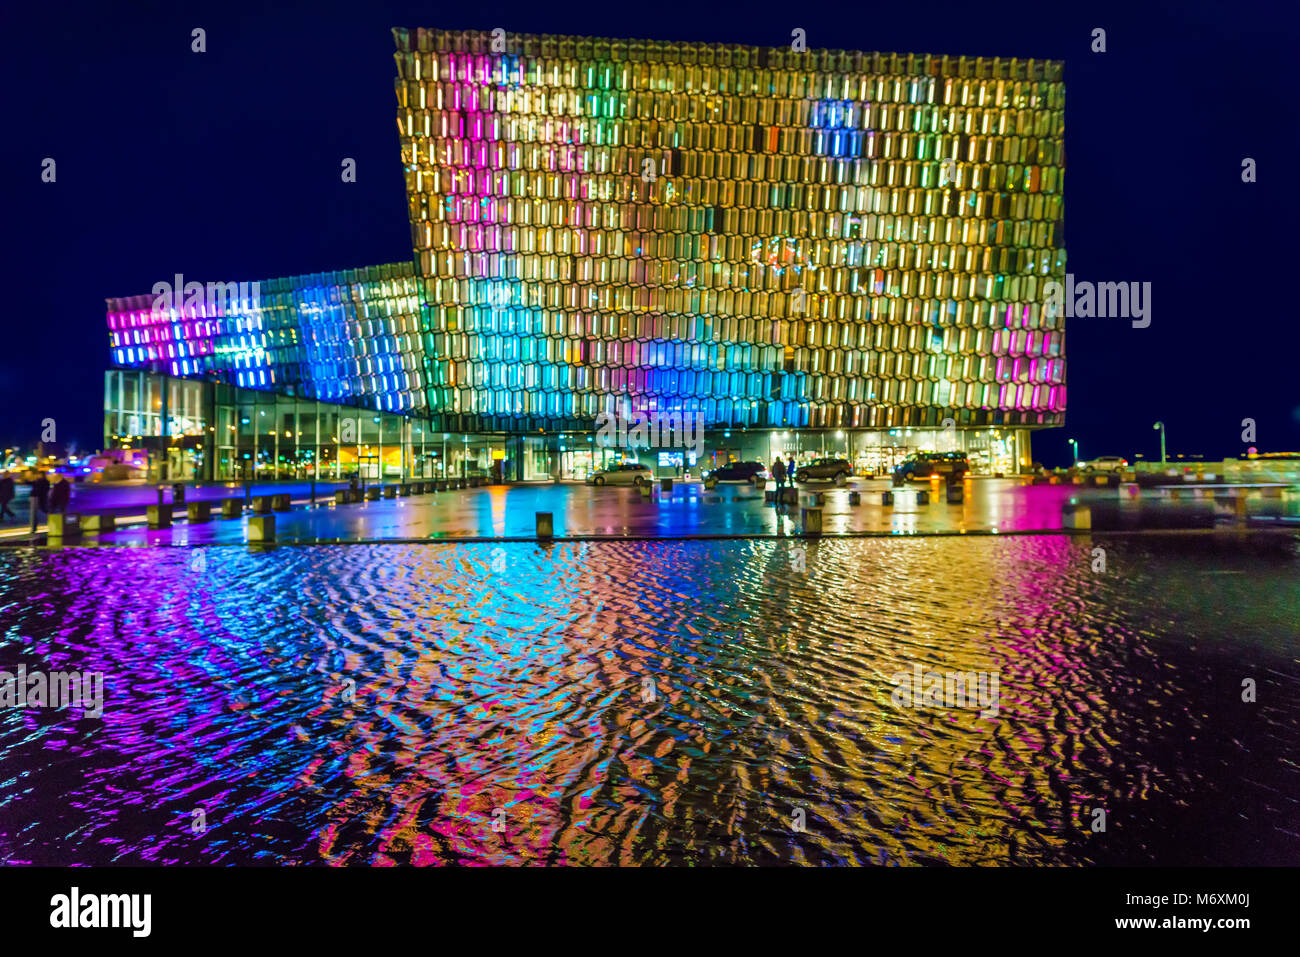 Colorful lights- Winter Lights Festival, Harpa Music Hall and Conference Centre, Reykjavik, Iceland - Stock Image